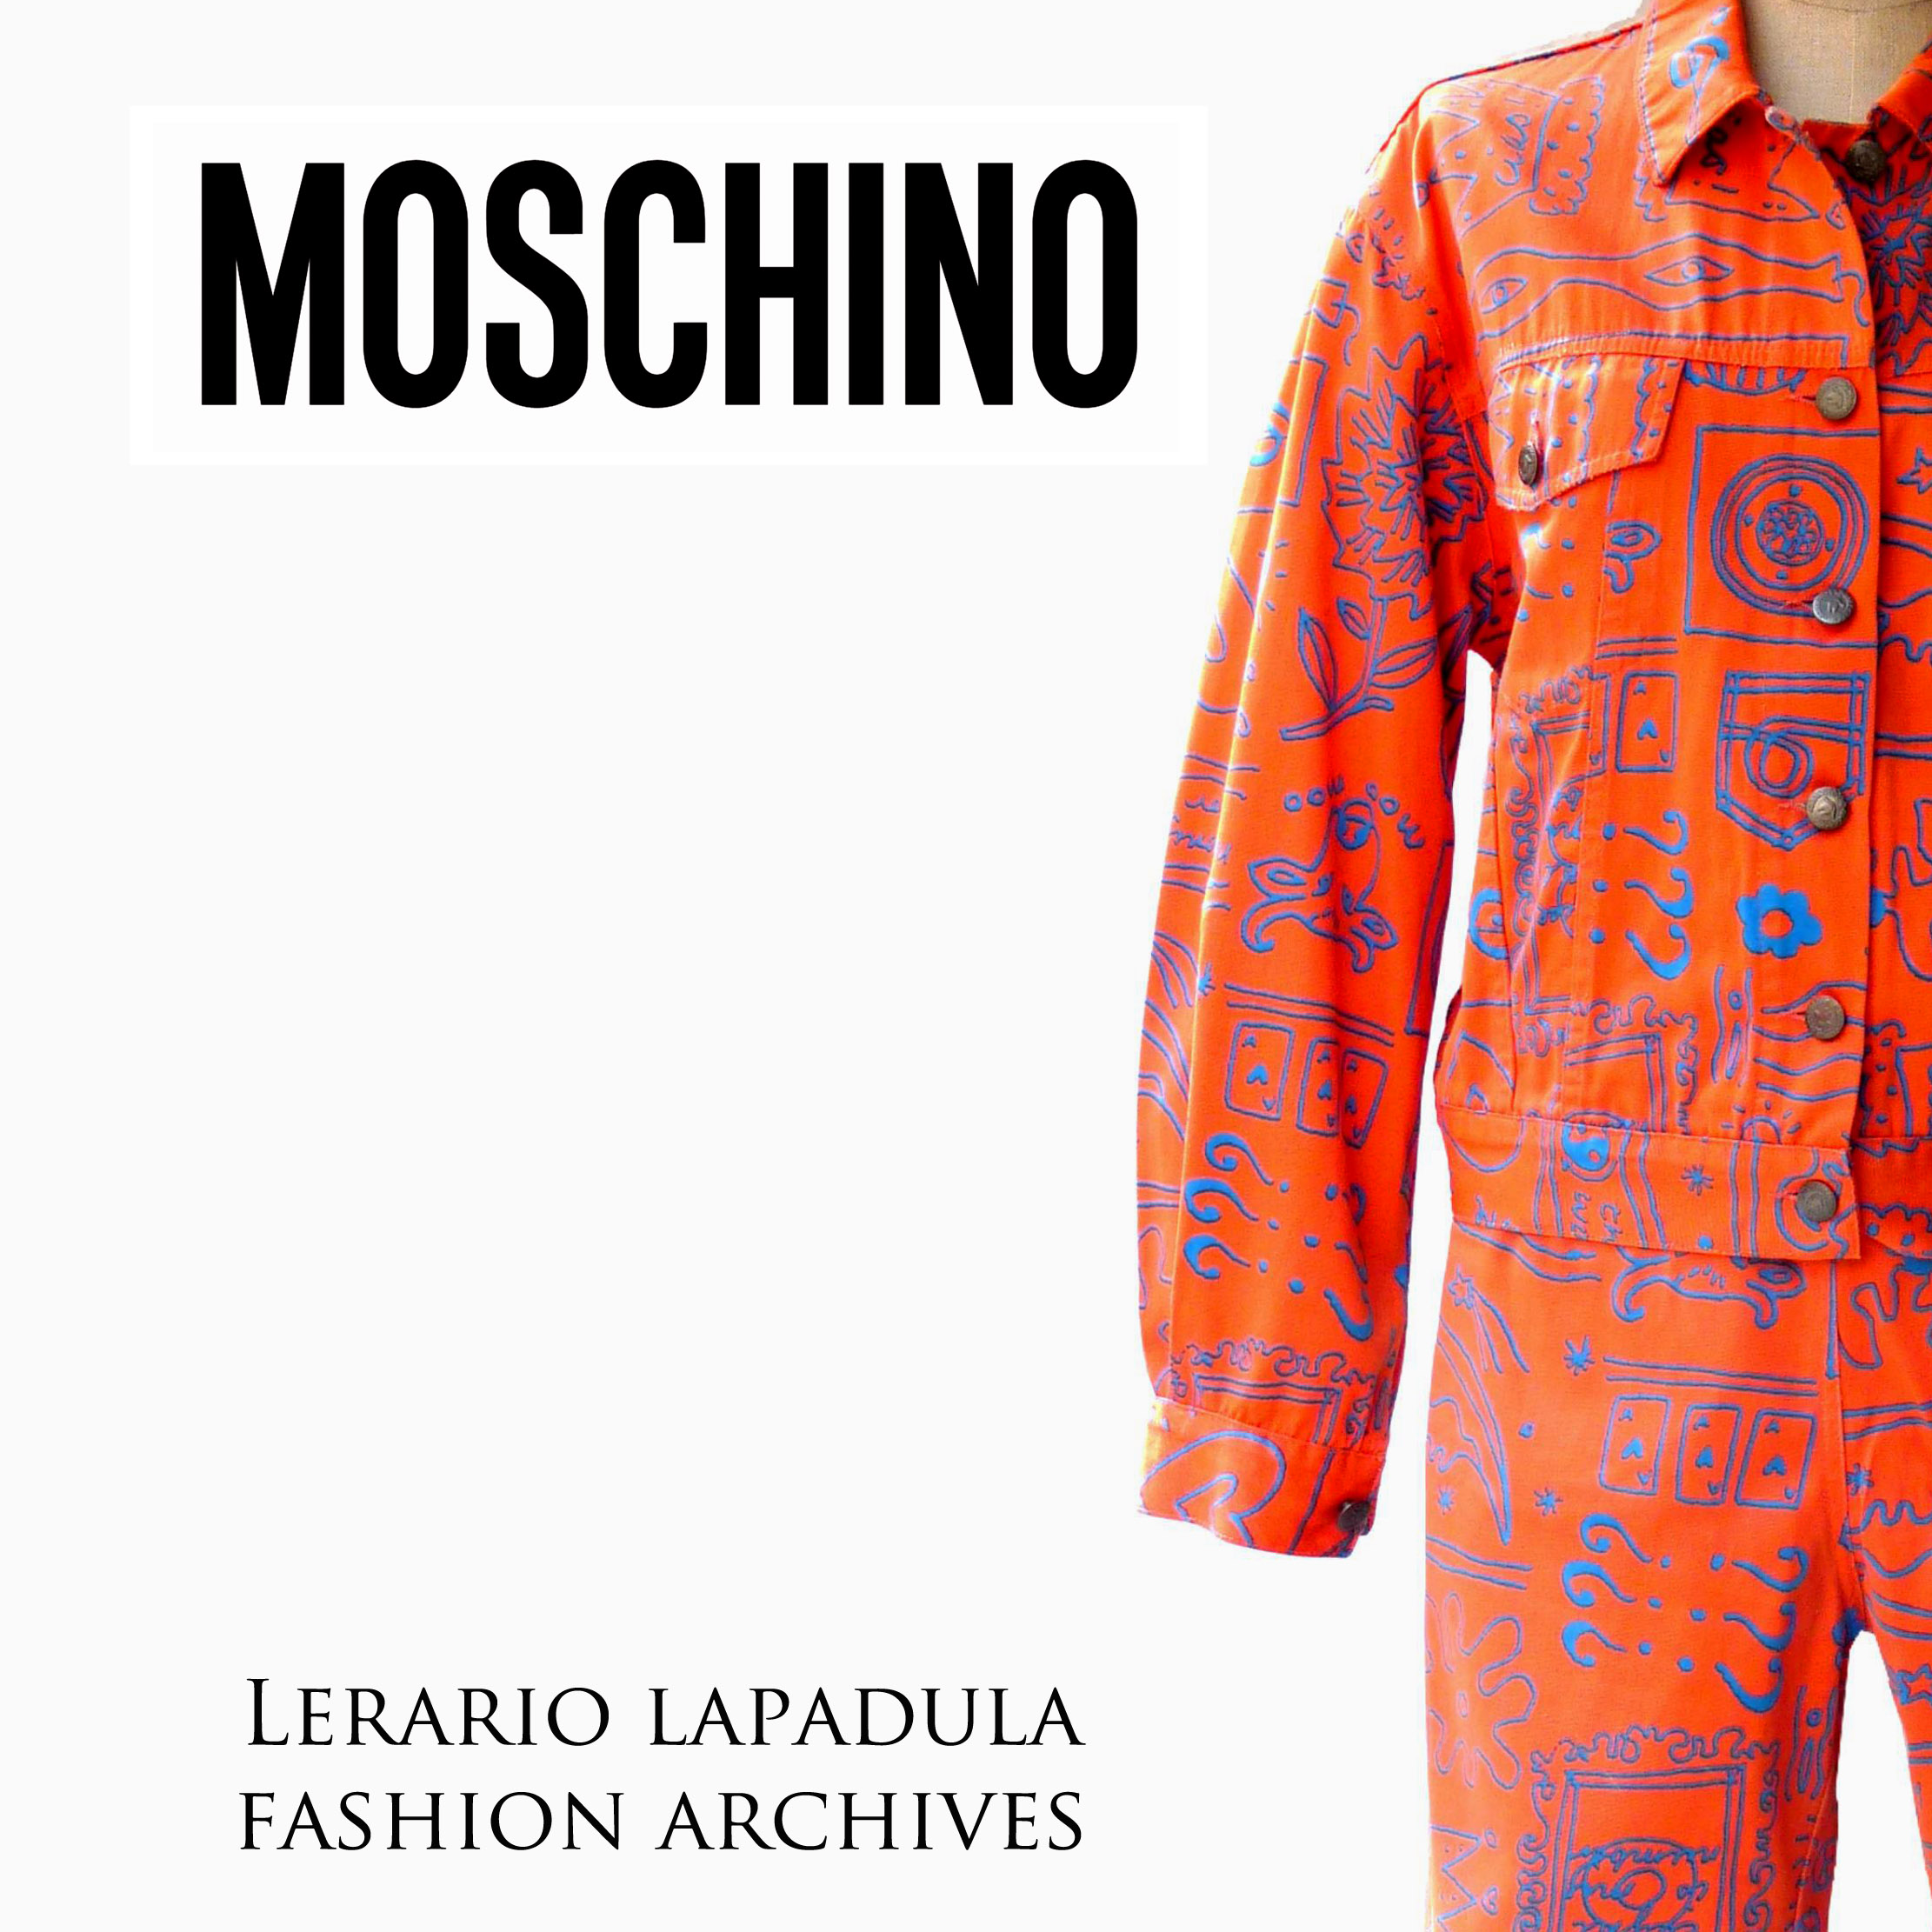 moschino-lerario-lapadula-fashion-archives-denim-jumper-fluo-1989-80s-1990-technotronic-suit-acid-house-dress-vintage-80er-90s